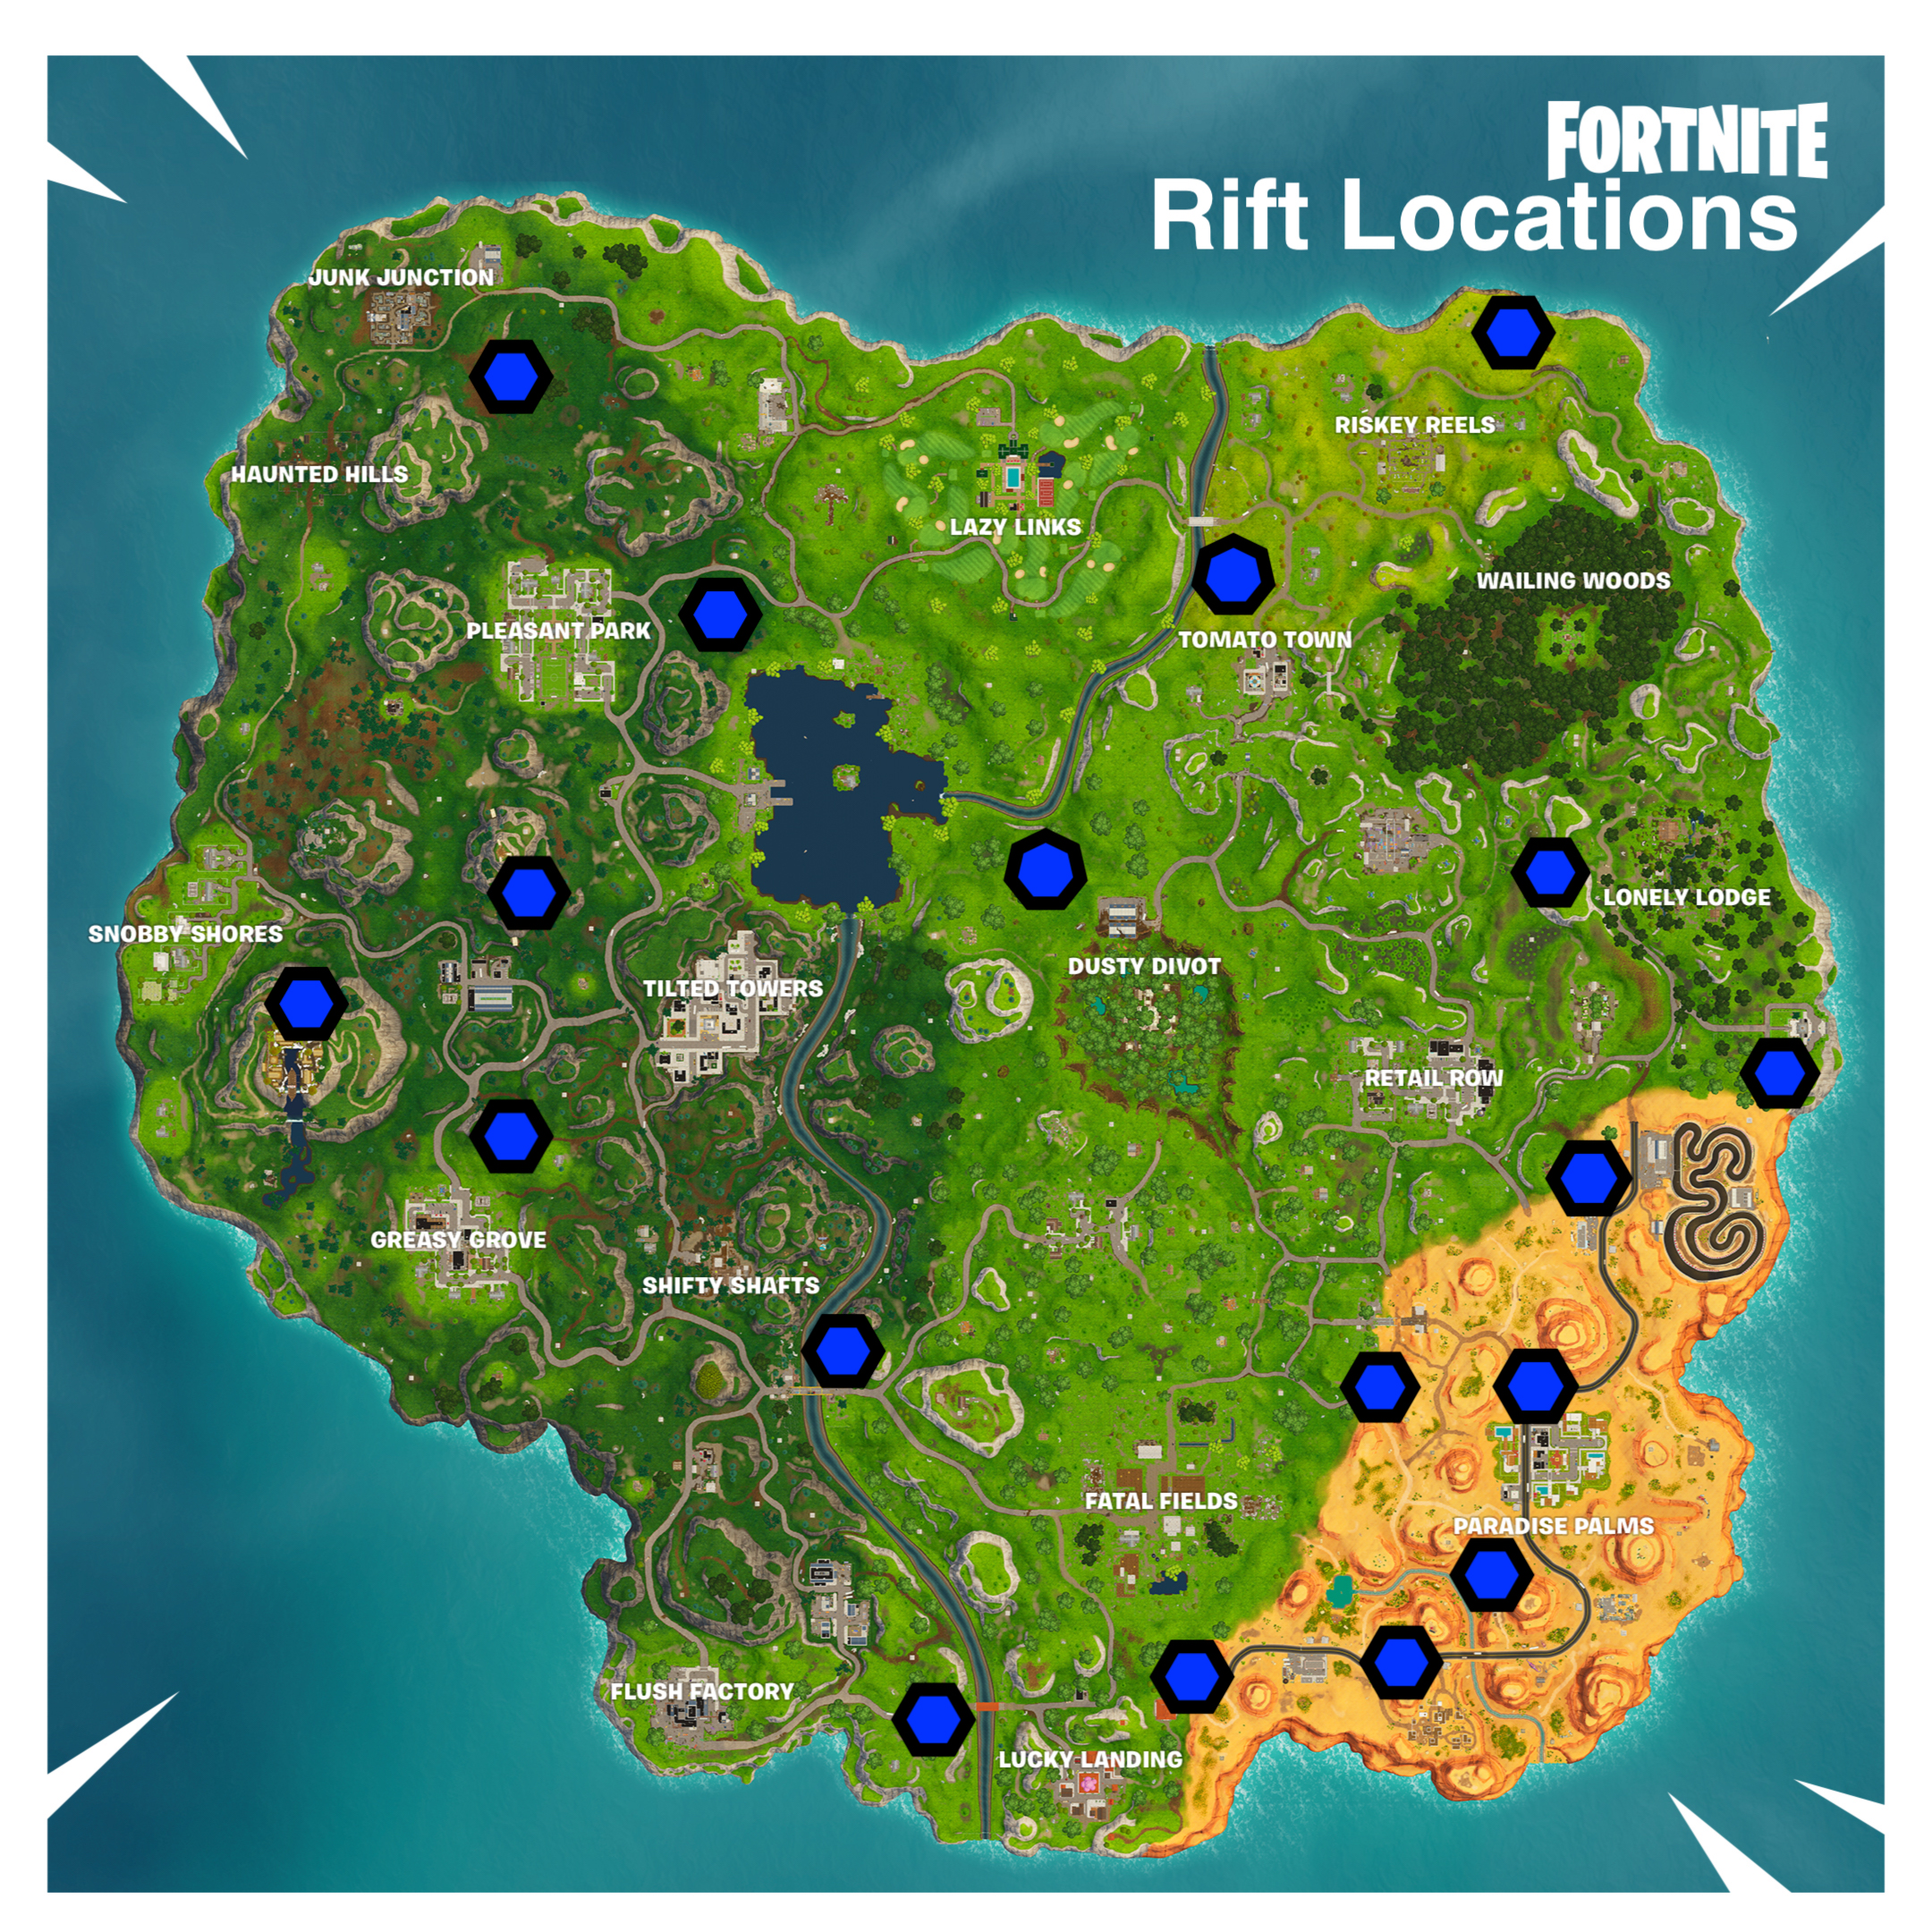 fortnite rift locations map use our guide to find the season 5